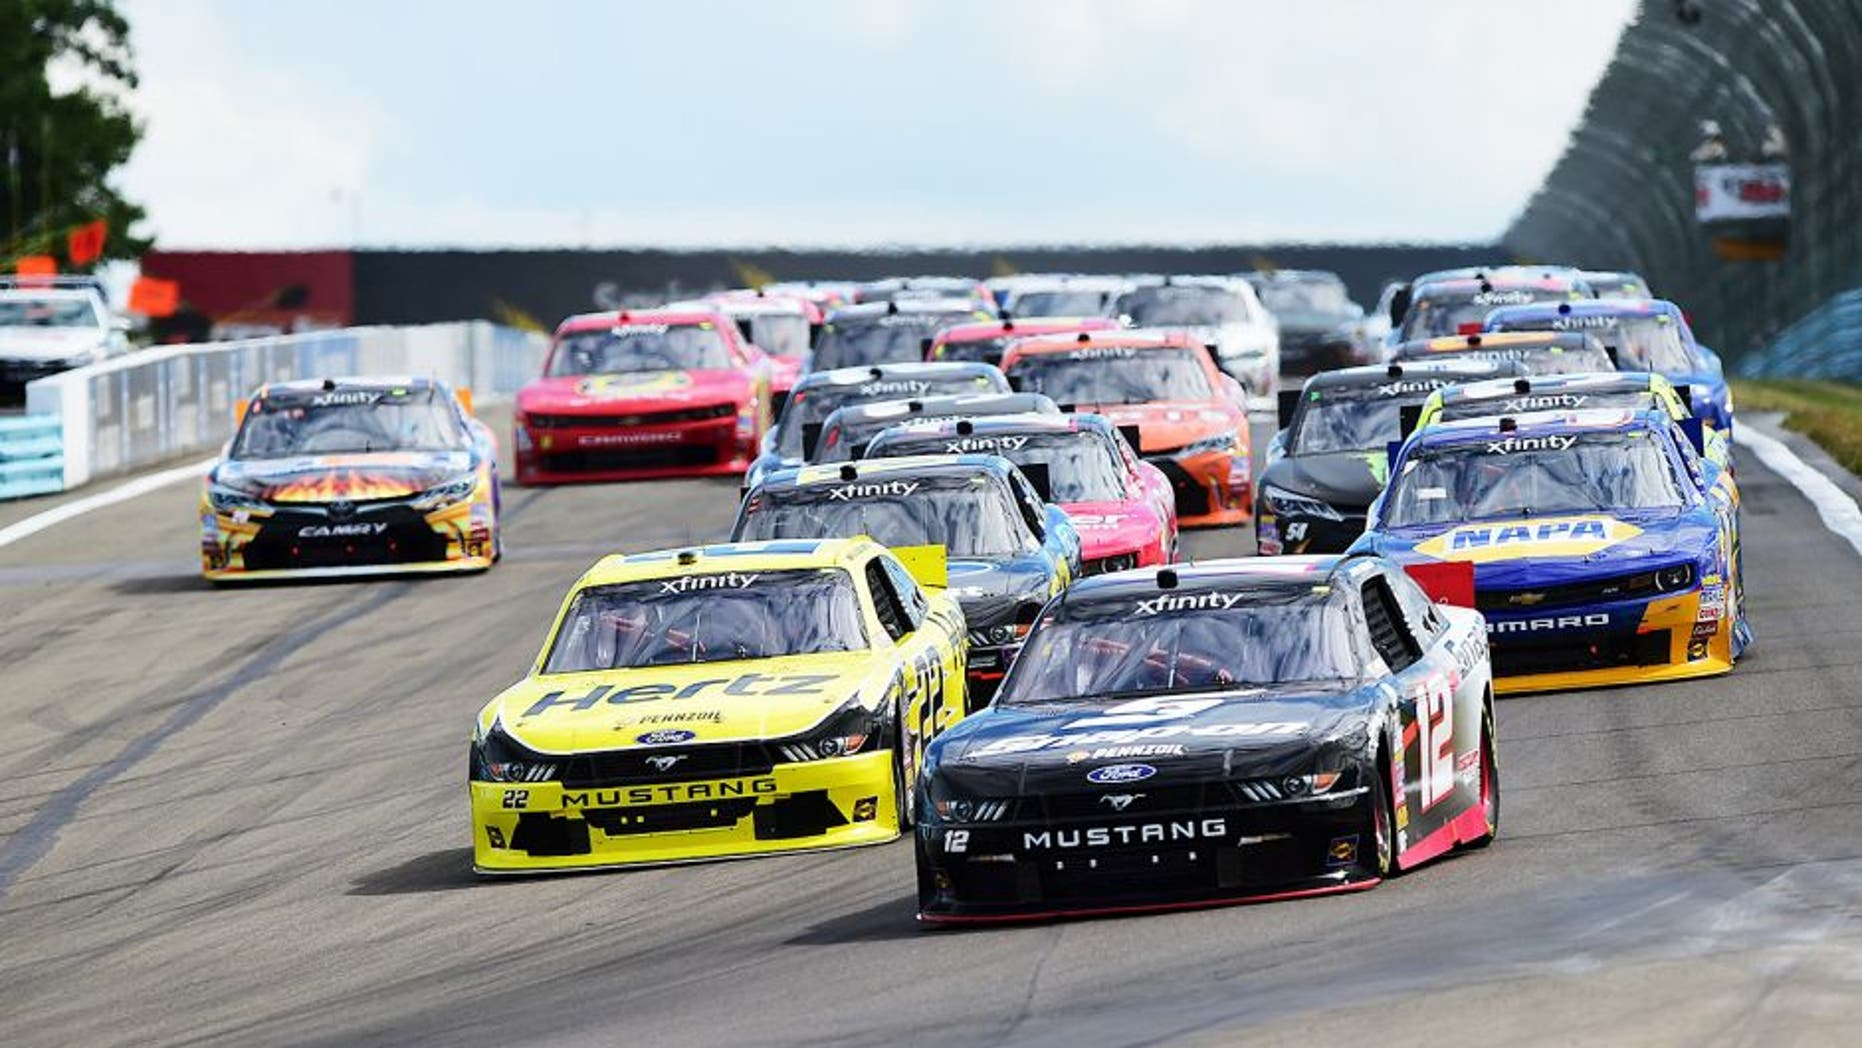 WATKINS GLEN, NY - AUGUST 08: Joey Logano, driver of the #12 Snap-on Ford, and Brad Keselowski, driver of the #22 Hertz Ford, lead a pack of cars during the NASCAR XFINITY Series Zippo 200 at Watkins Glen International on August 8, 2015 in Watkins Glen, New York. (Photo by Jared C. Tilton/NASCAR via Getty Images)